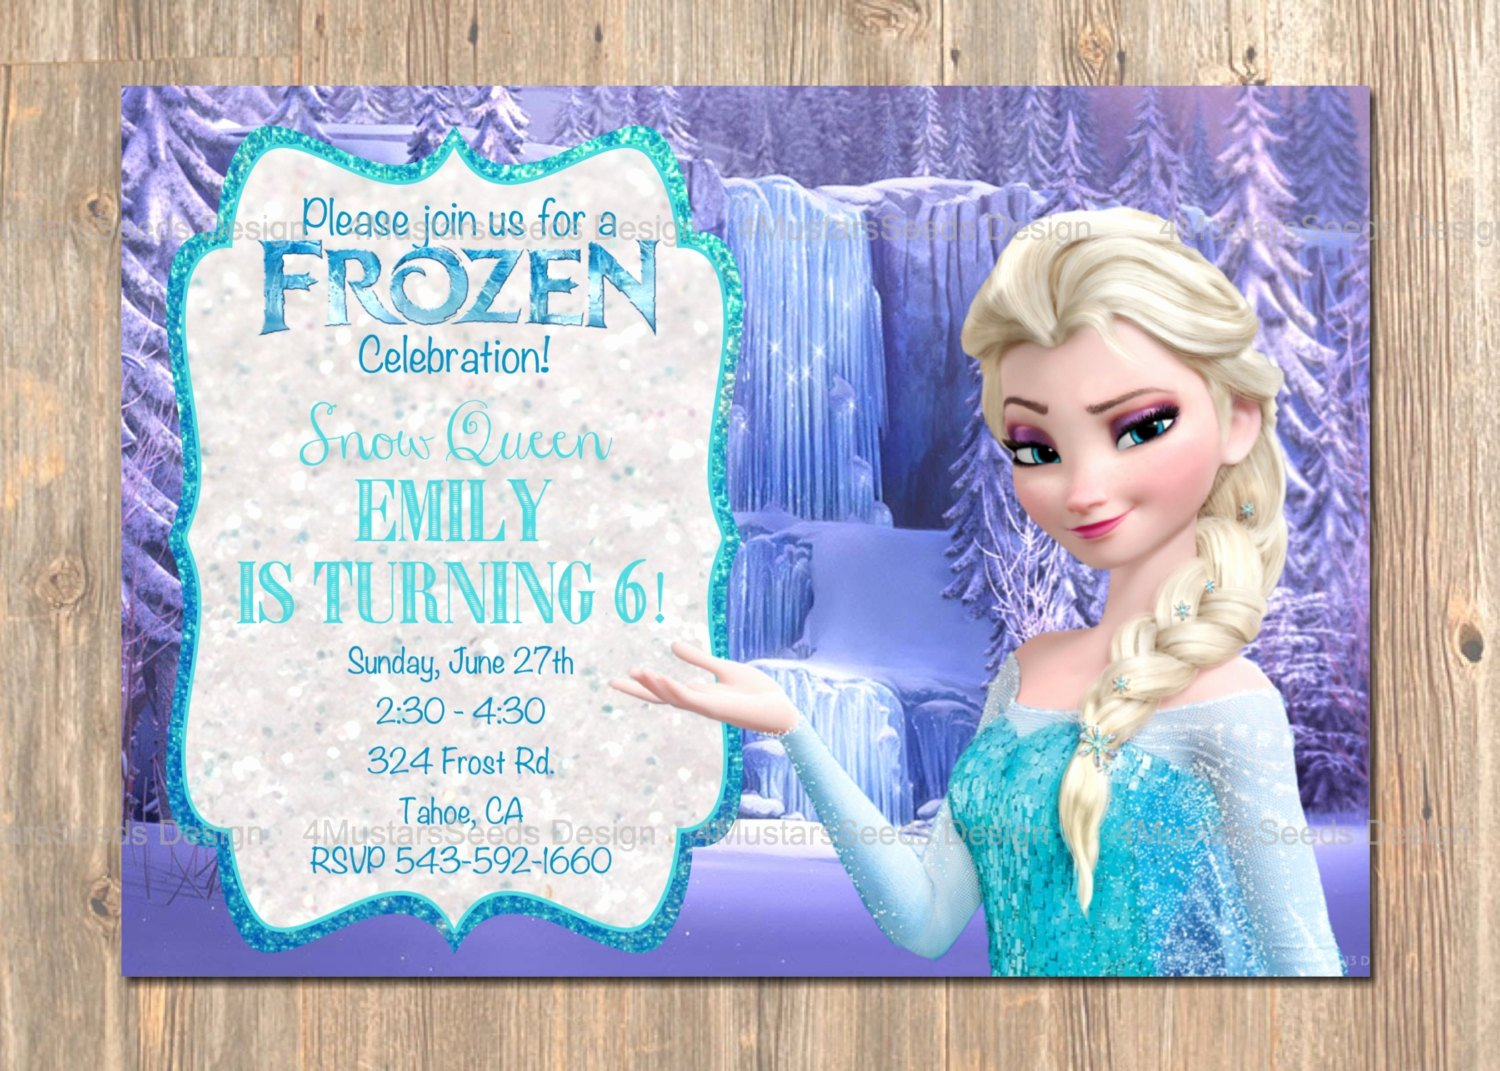 Frozen Birthday Invitations Wording Luxury Frozen Birthday Invitation Elsa Frozen Invitation Printable